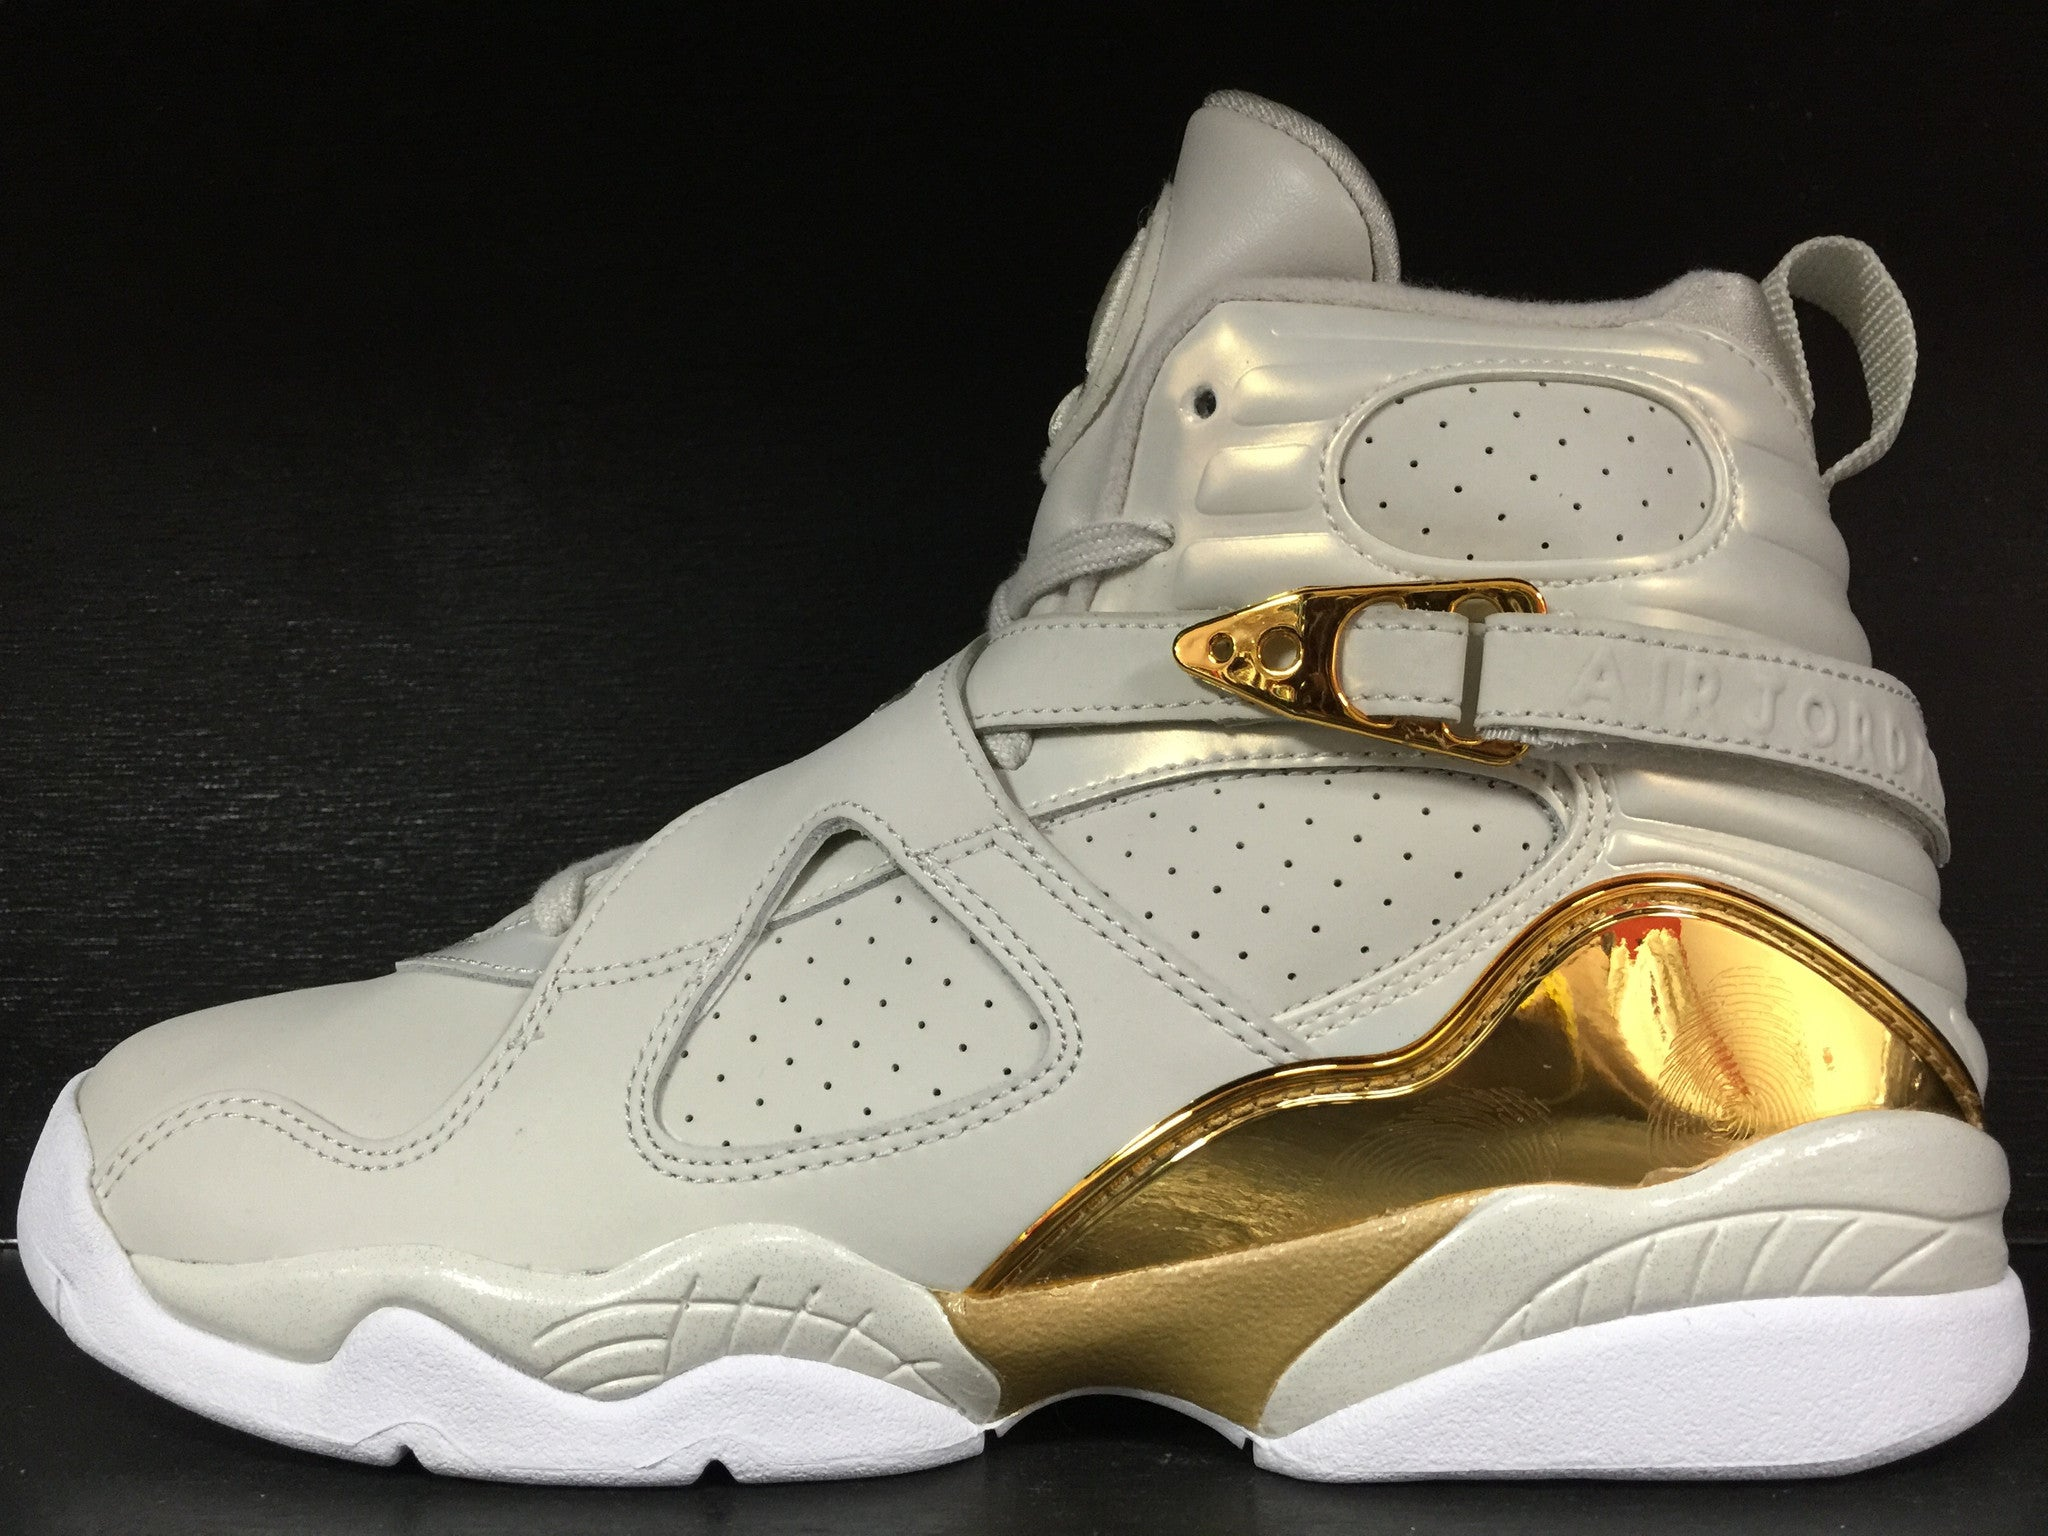 Air Jordan 8 'Championship Trophy' GS